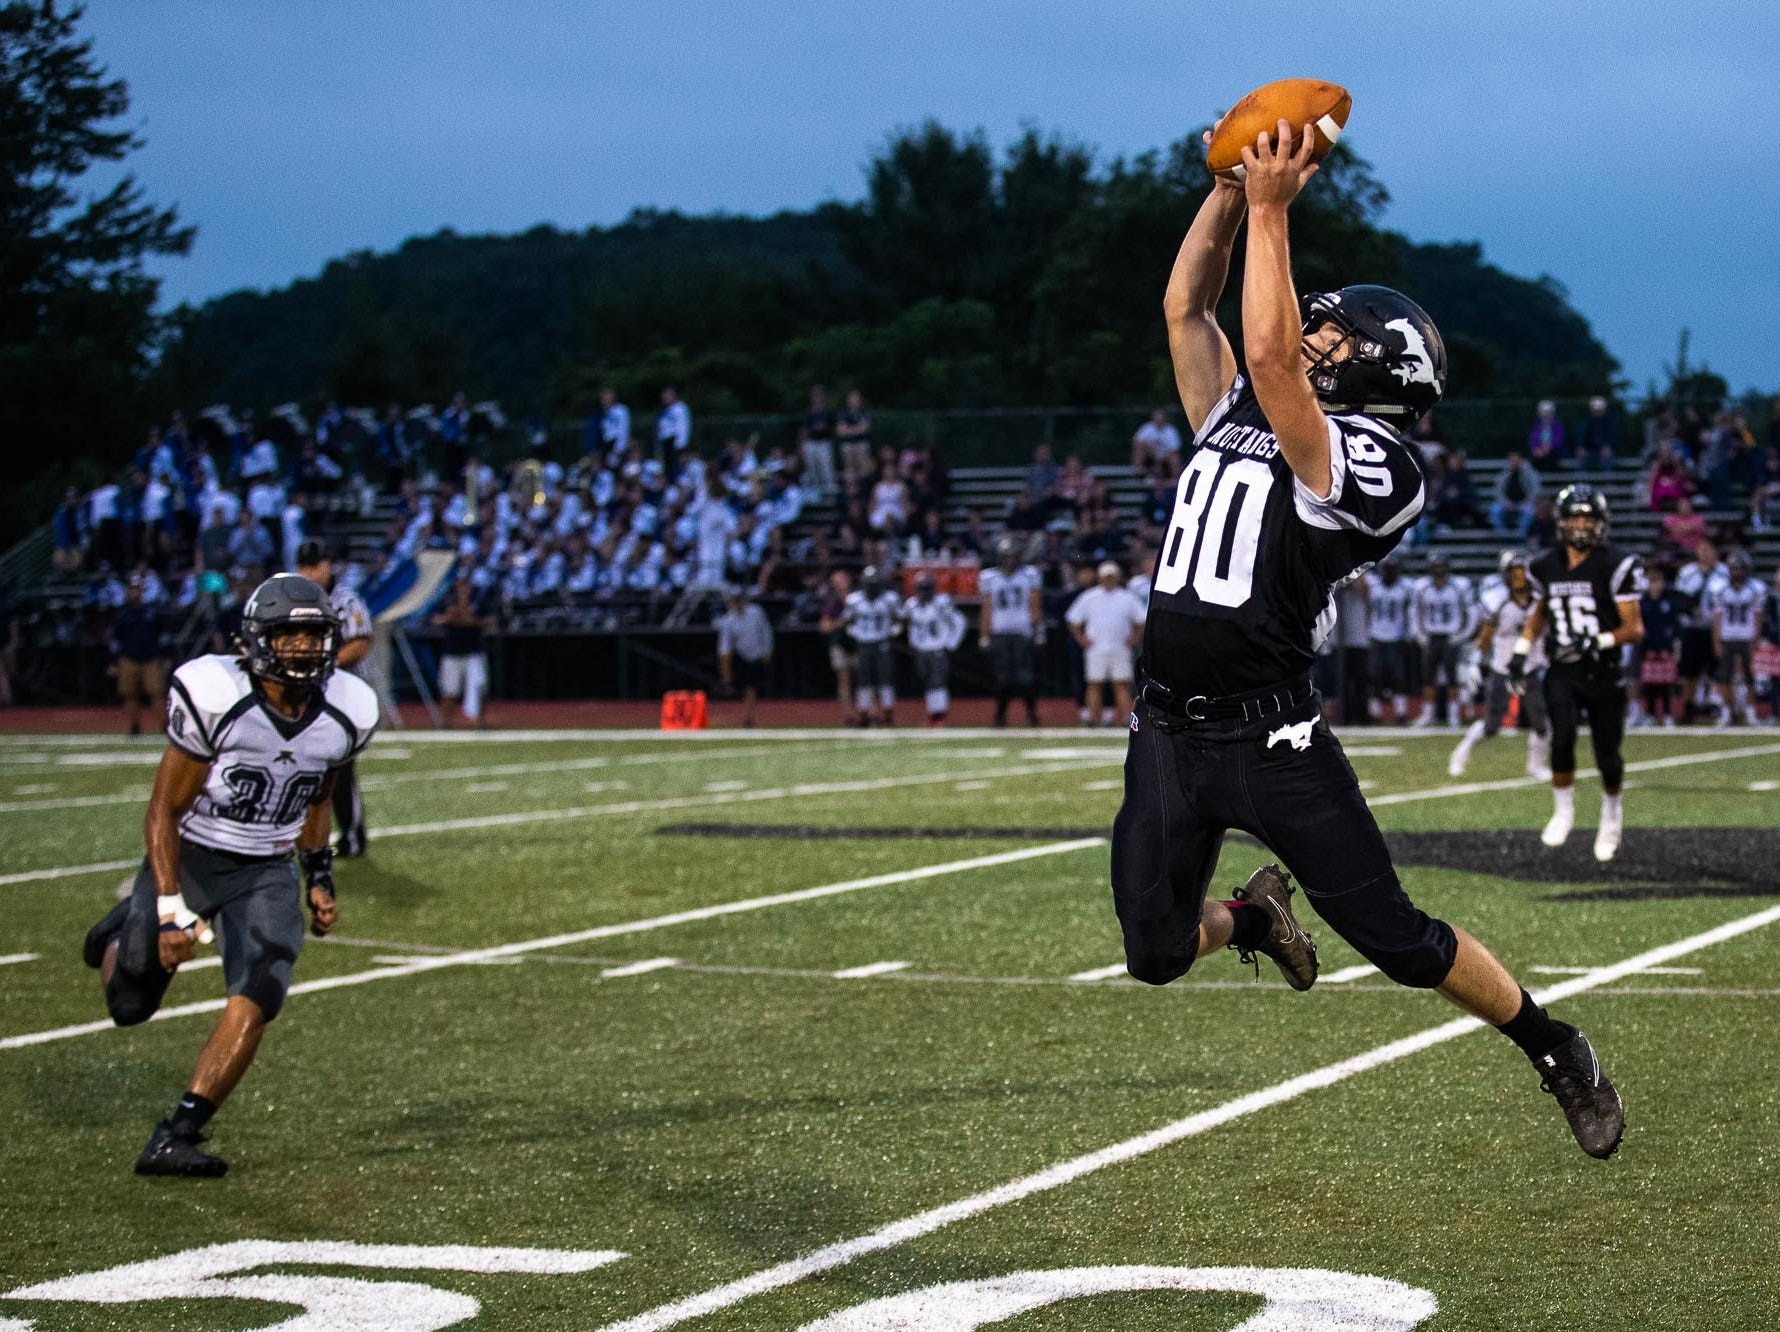 South Western's Garrett Wilson (80) flies into the air to catch a pass during a football game between South Western and Dallastown, Friday, Sept. 14, 2018, at South Western High School in Penn Township. Dallastown won, 35-7.